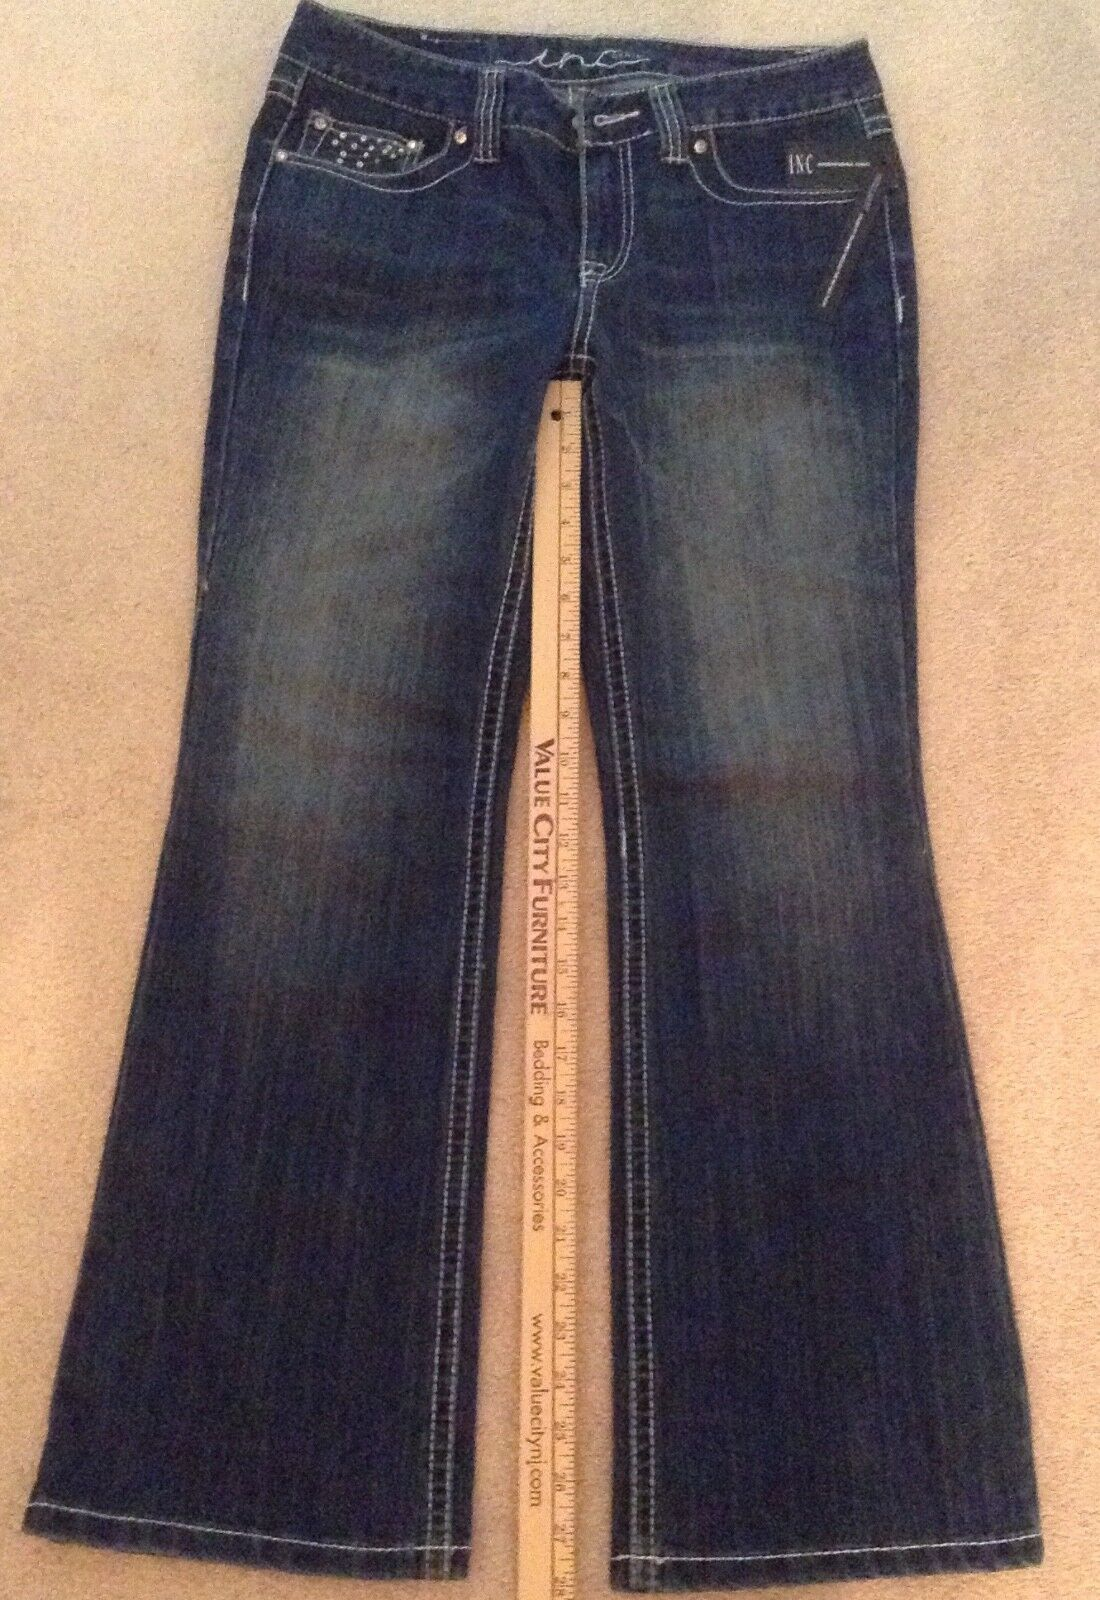 NWT I.N.C. womens size 6 short boot cut